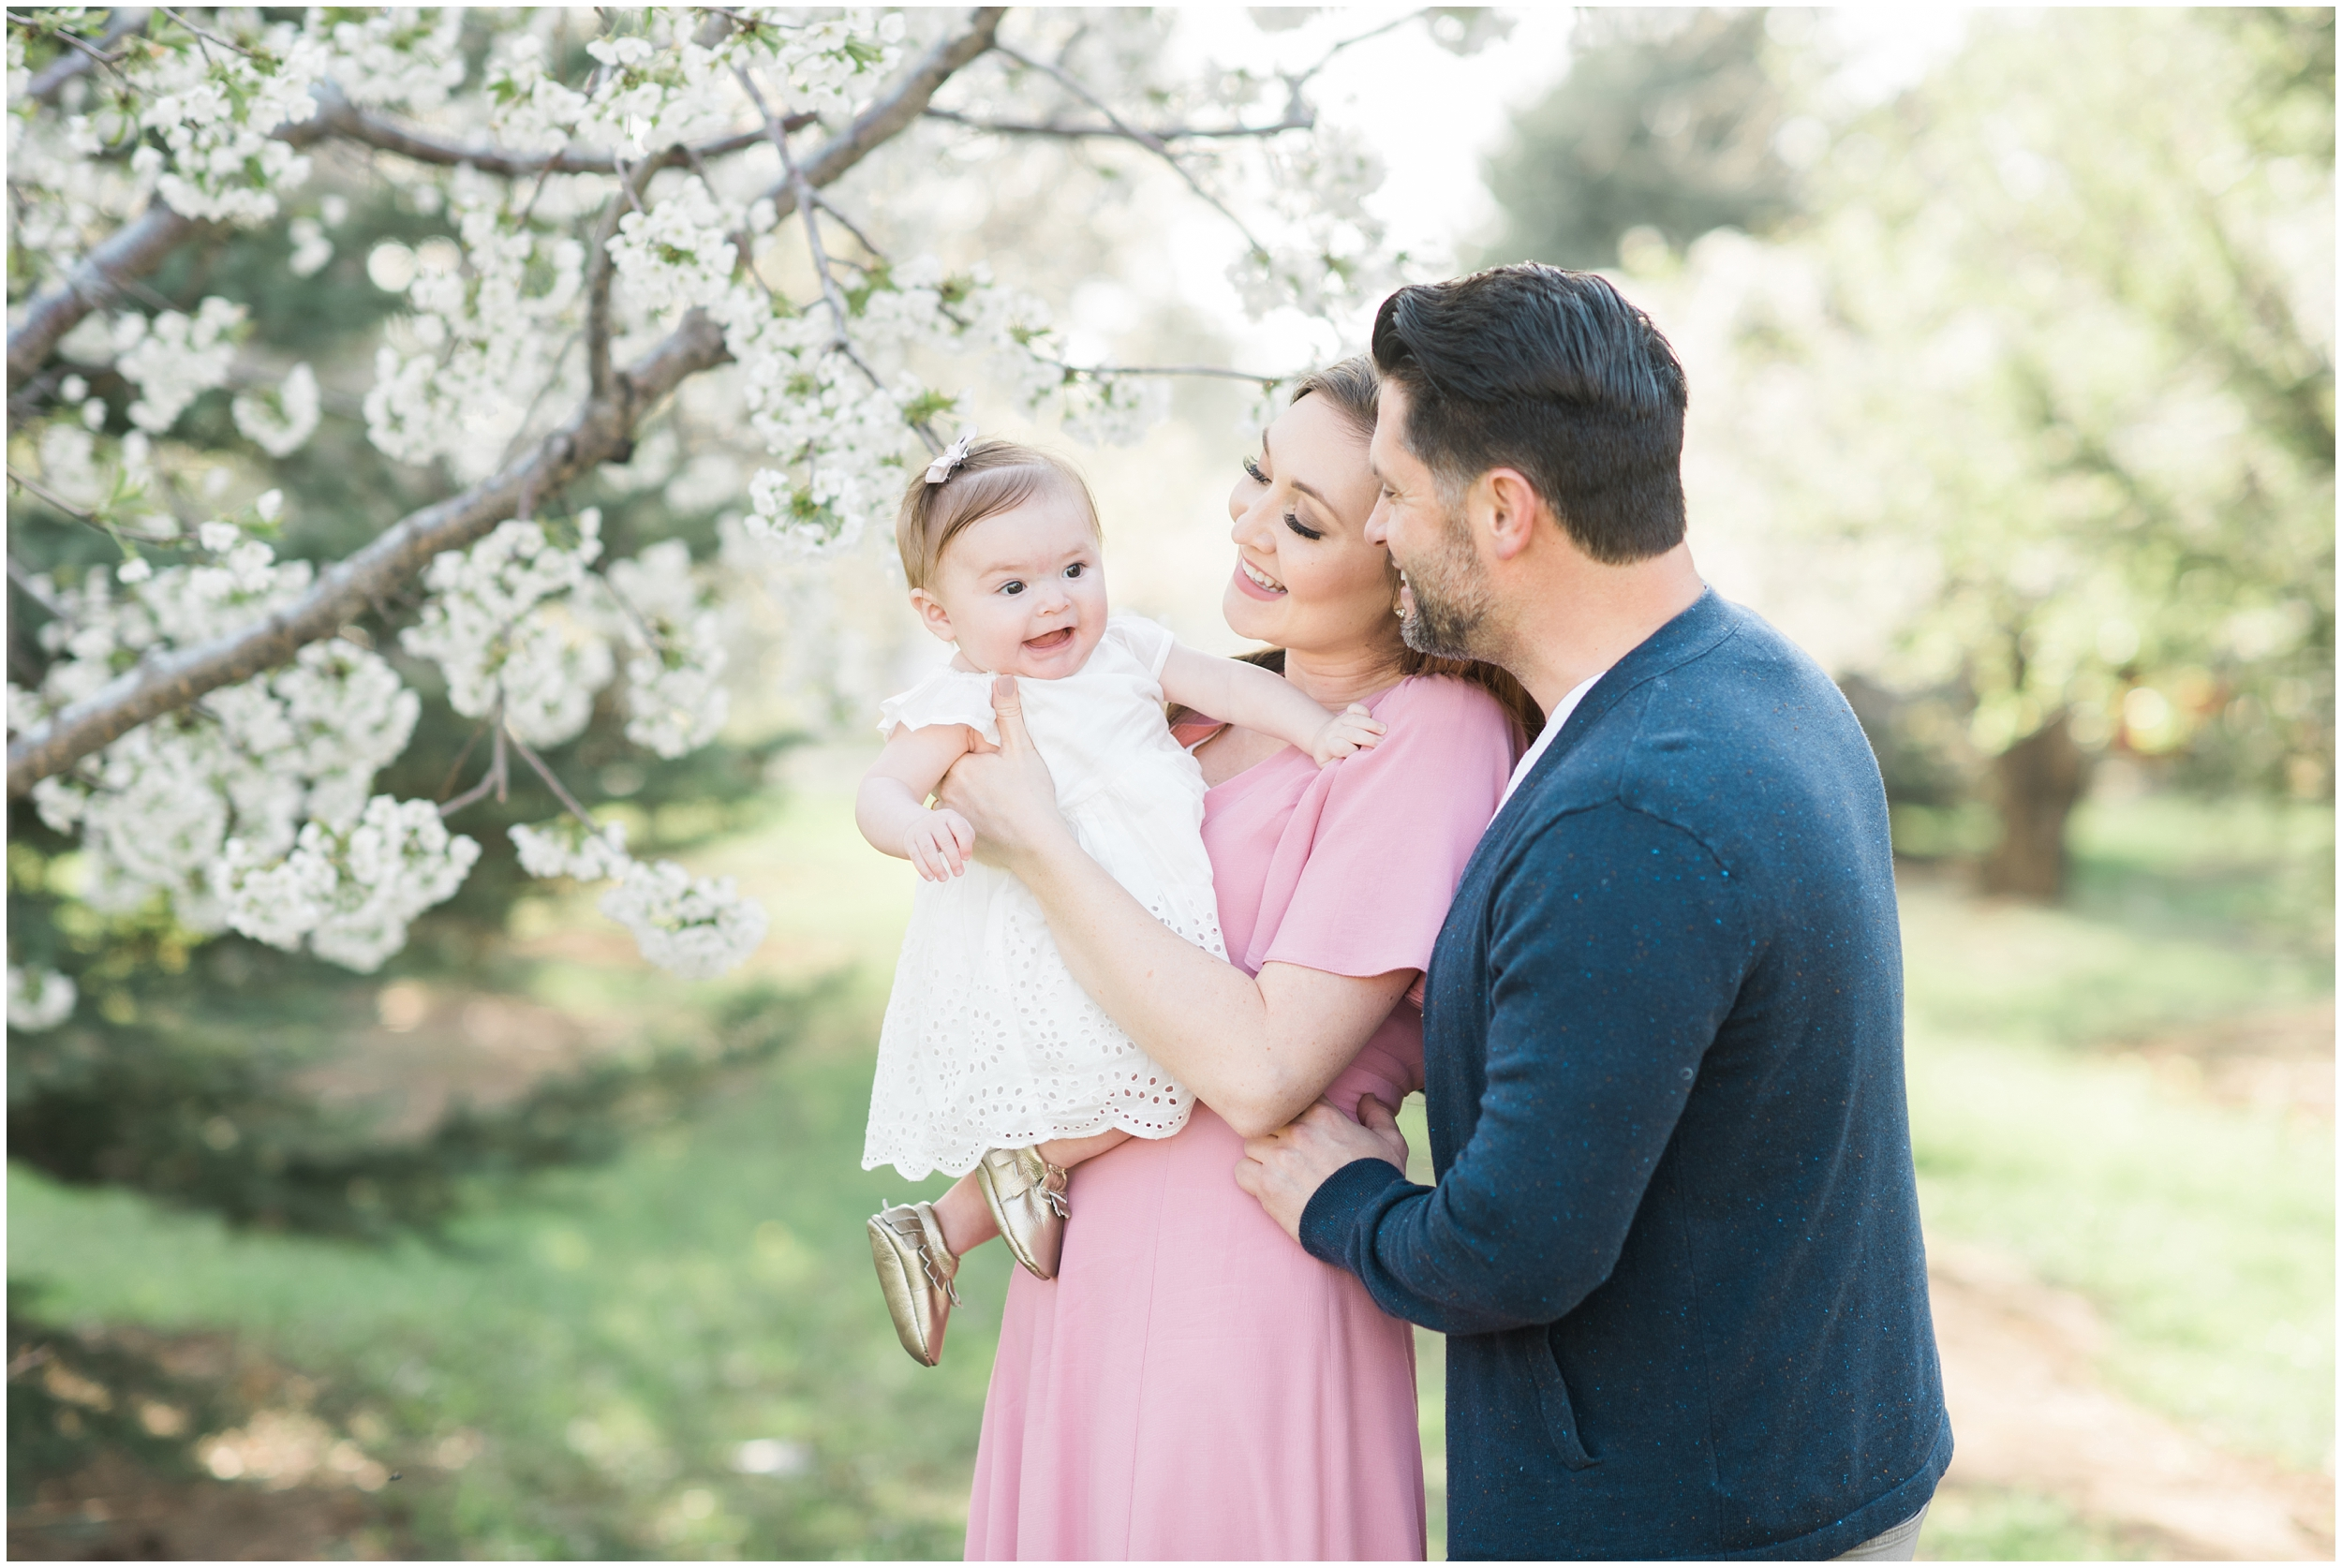 Blush dress, blush and navy blue, spring blooms, long blush dress, down hair, white baby dress, gold shoes, family photographers in Utah, Utah family photographer, family photos Utah, Kristina Curtis photography, Kristina Curtis Photographer, www.kristinacurtisphotography.com